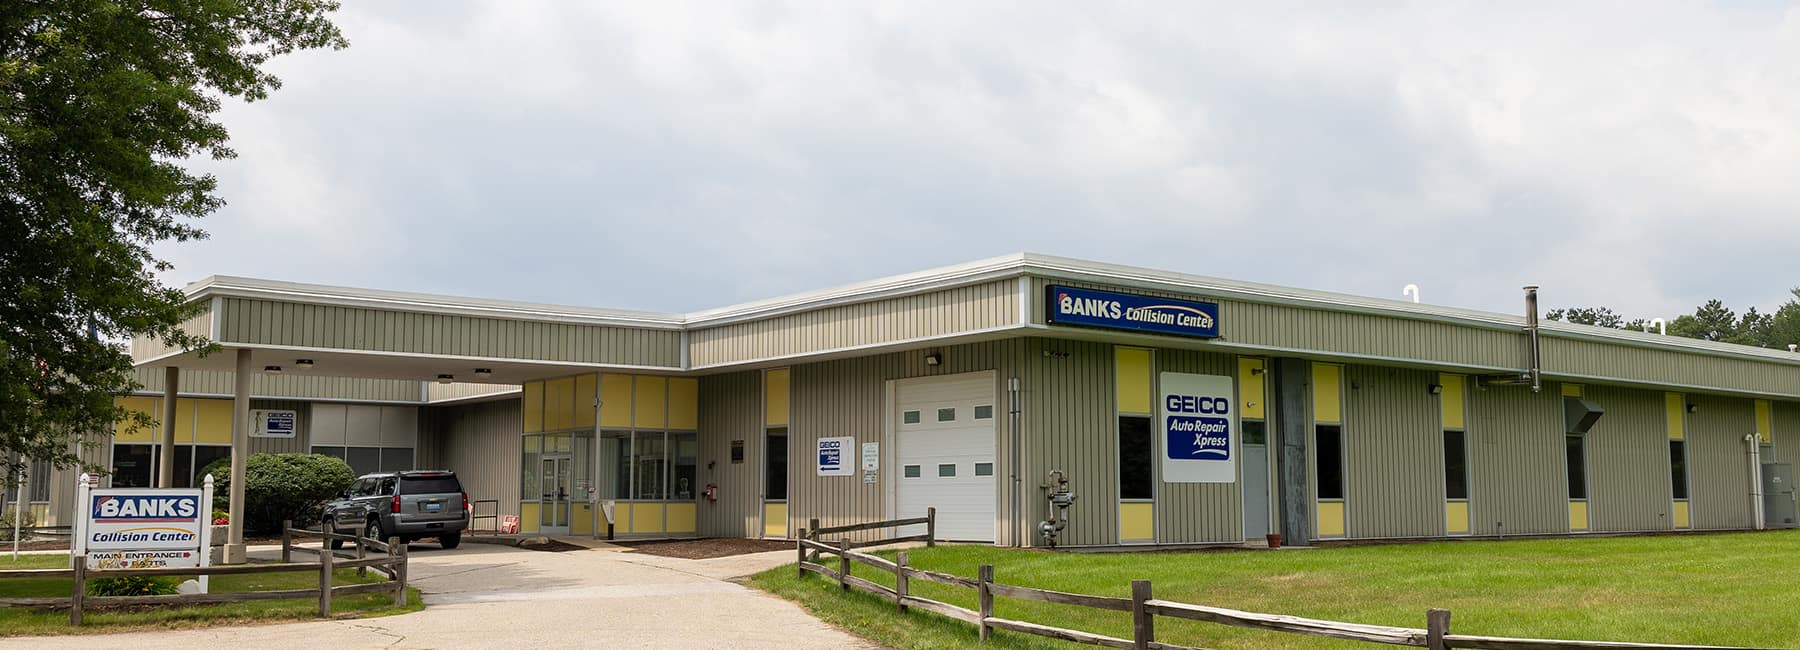 Banks-Collision-Center | Concord, NH